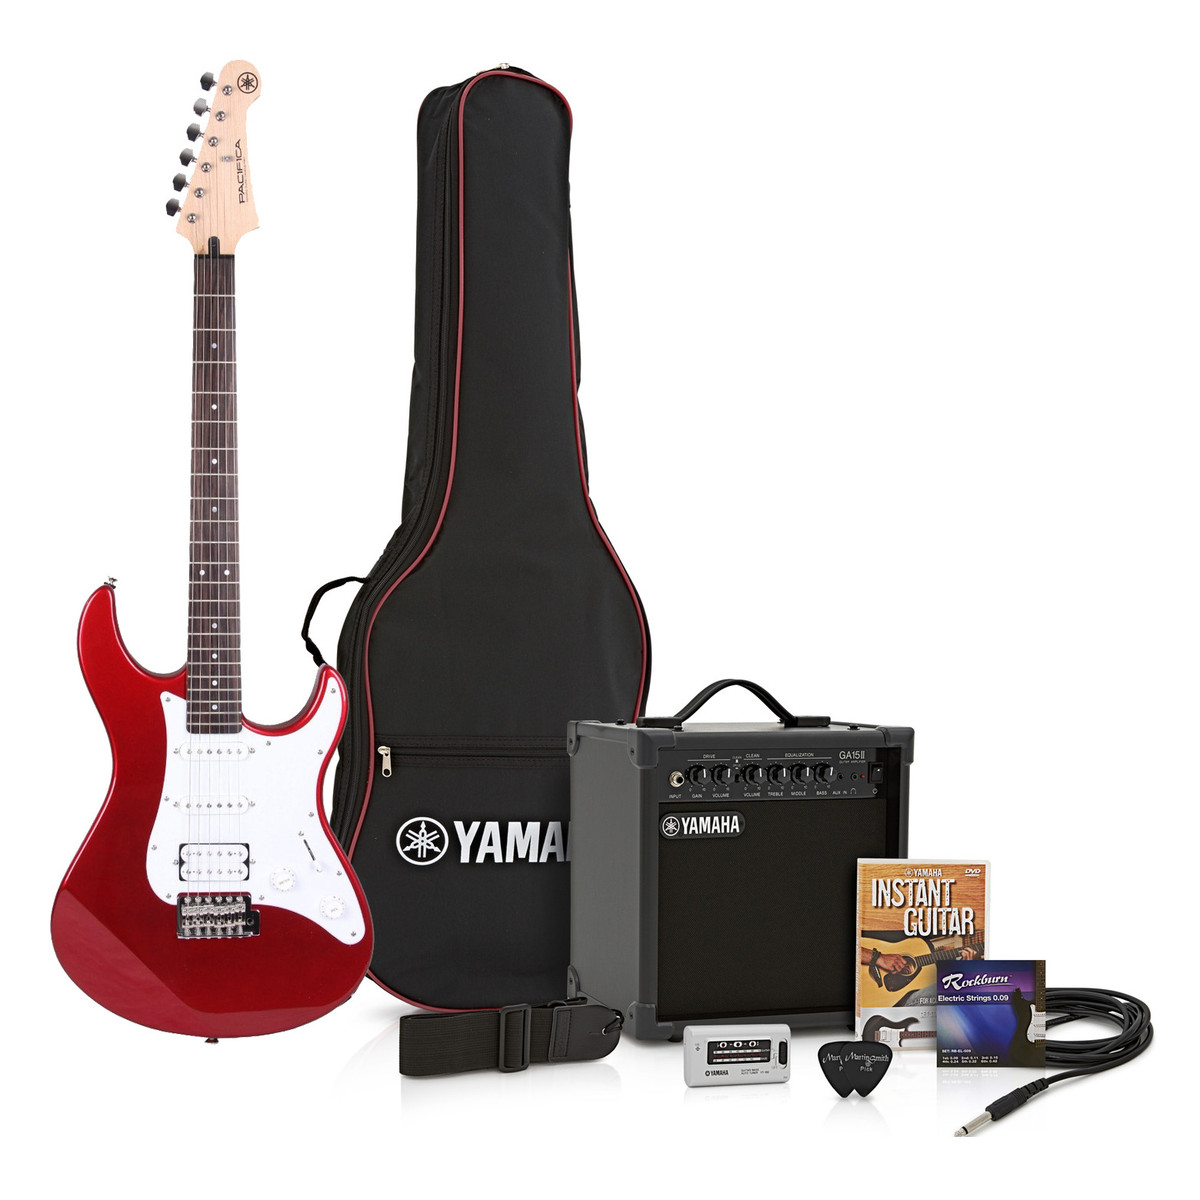 397f450862 Yamaha Pacifica 012 Pack, Red Metallic - Pack. Loading zoom